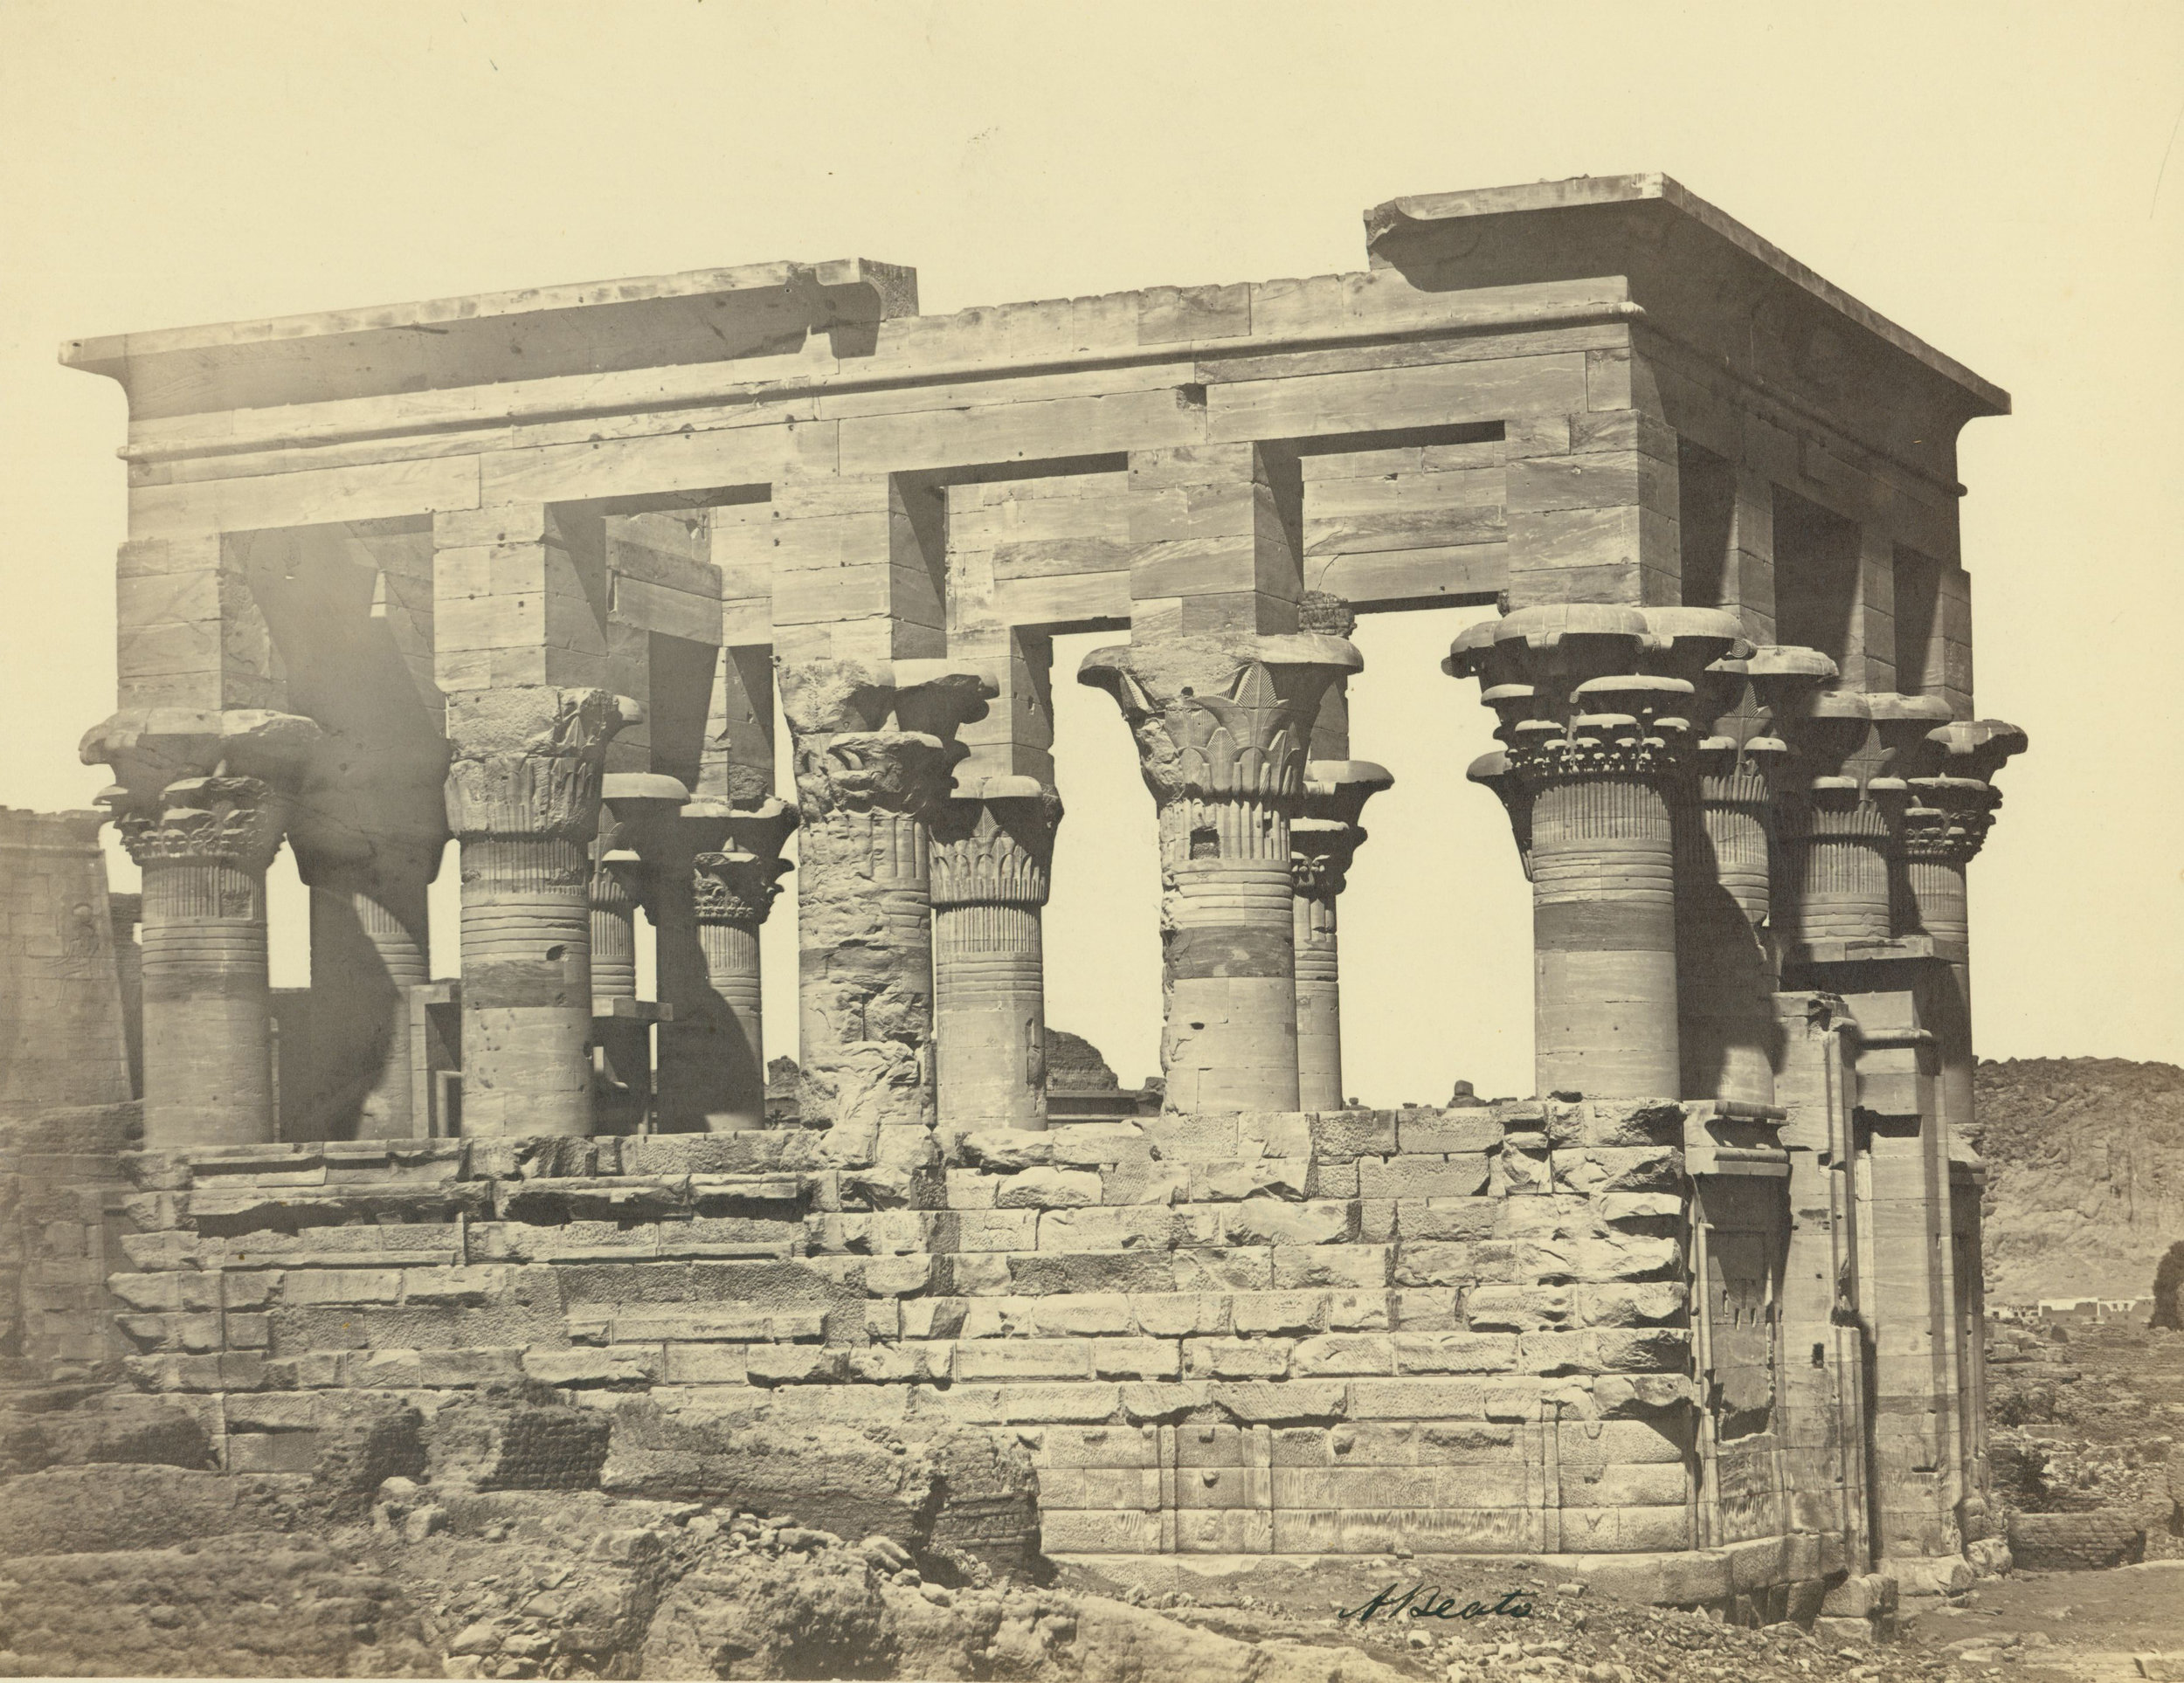 ANTONIO BEATO Trajan's Kioski, or Pharaoh's Bed, Island of Philae, Egypt c. 1887